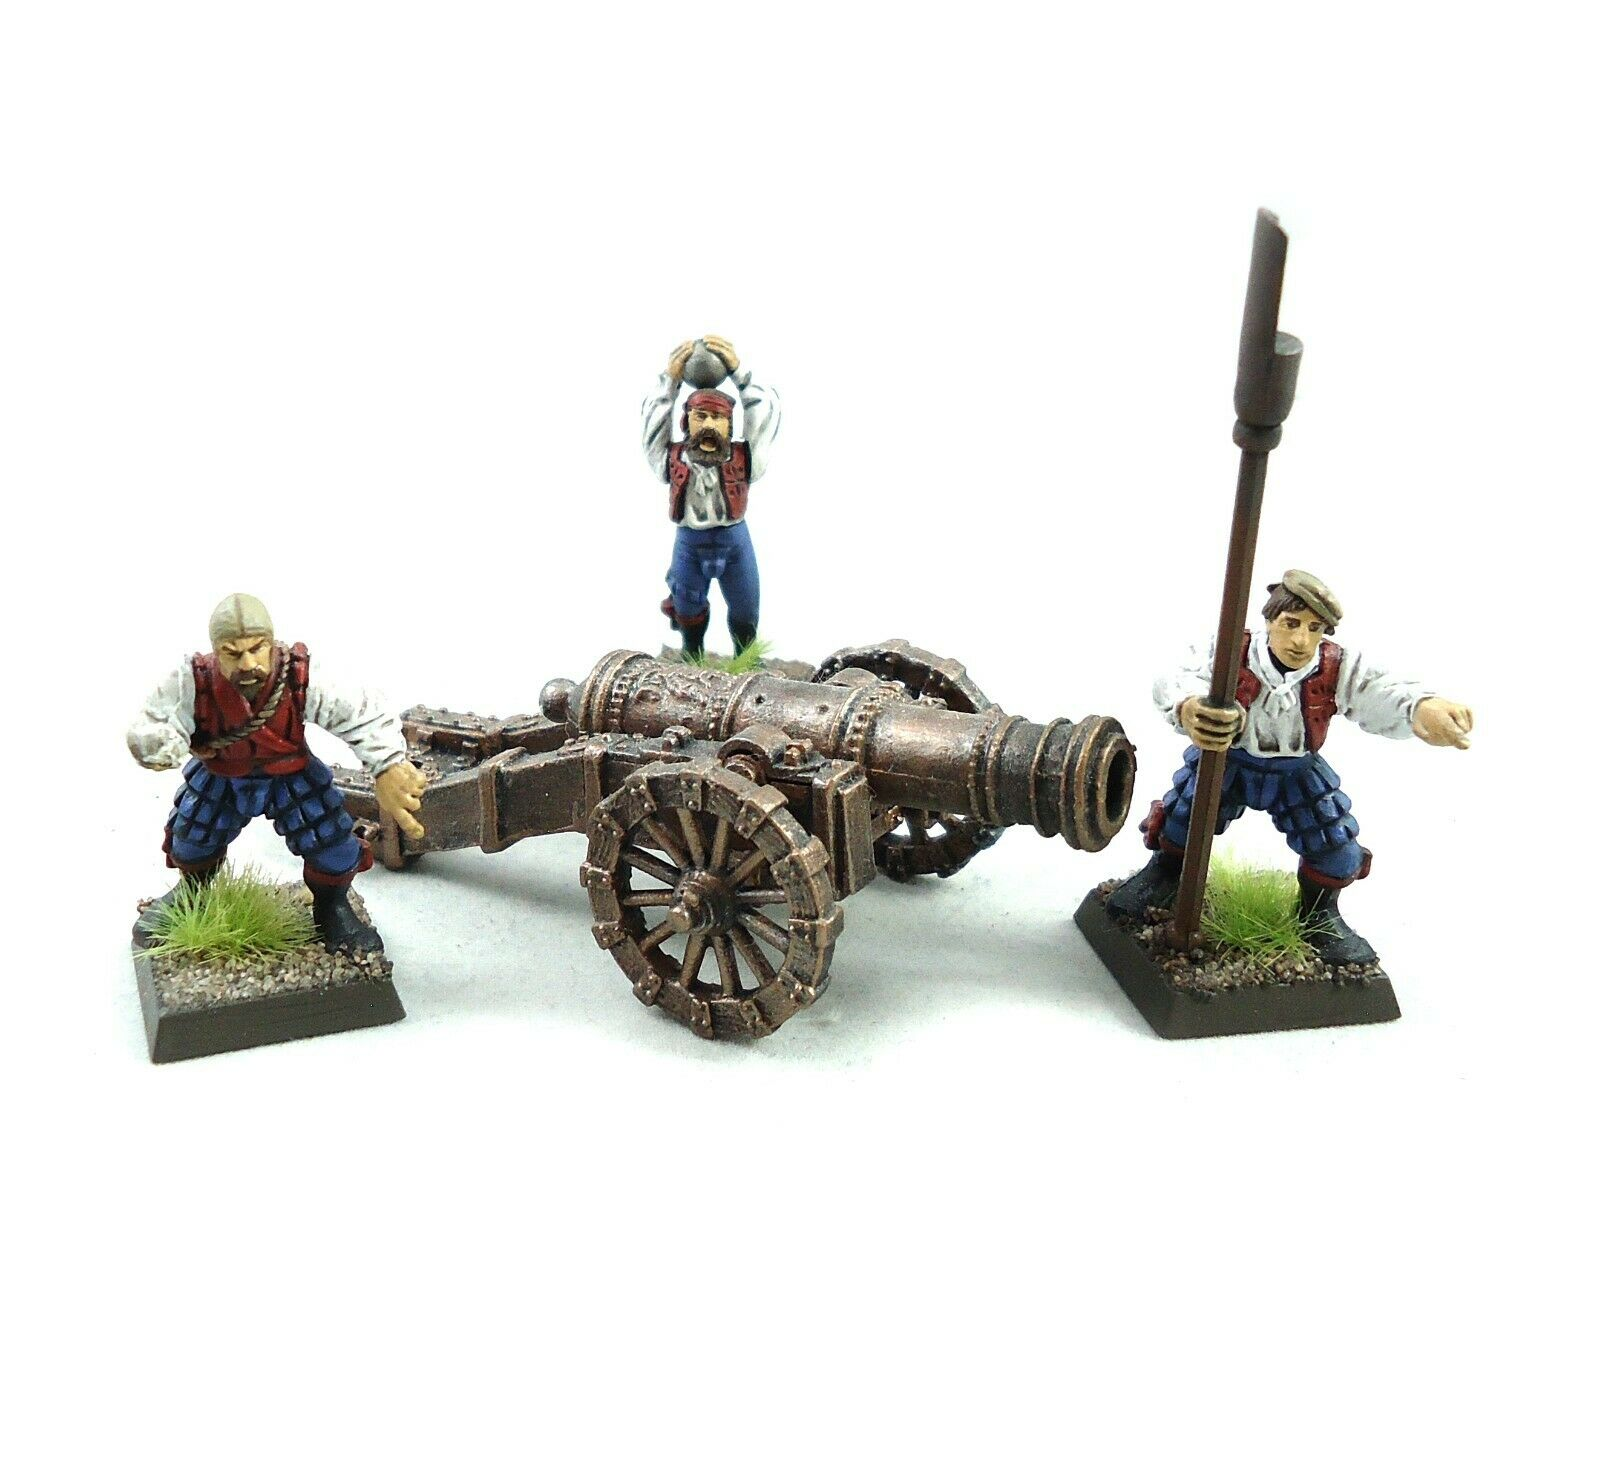 Warhammer Fantasy Age of Sigmar Army Empire Cannon Painted